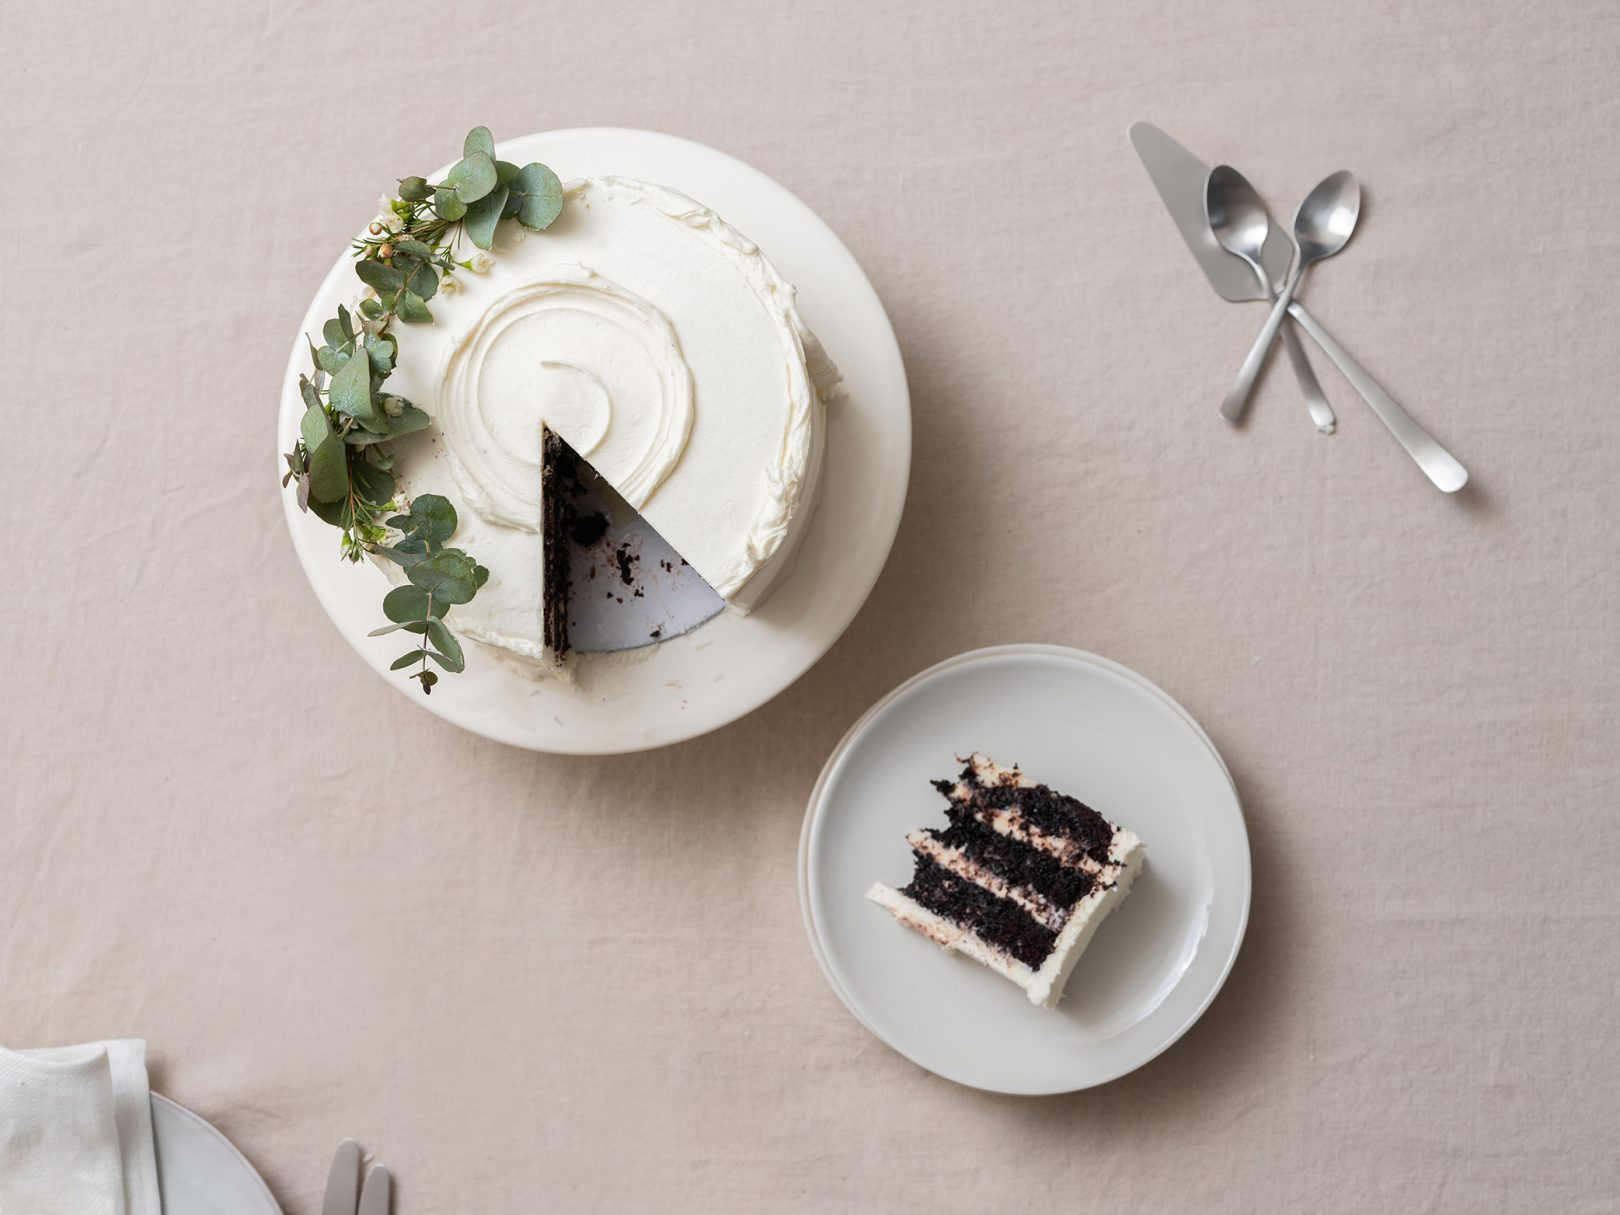 Trouva Anna Barnett's chocolate and stem ginger cake